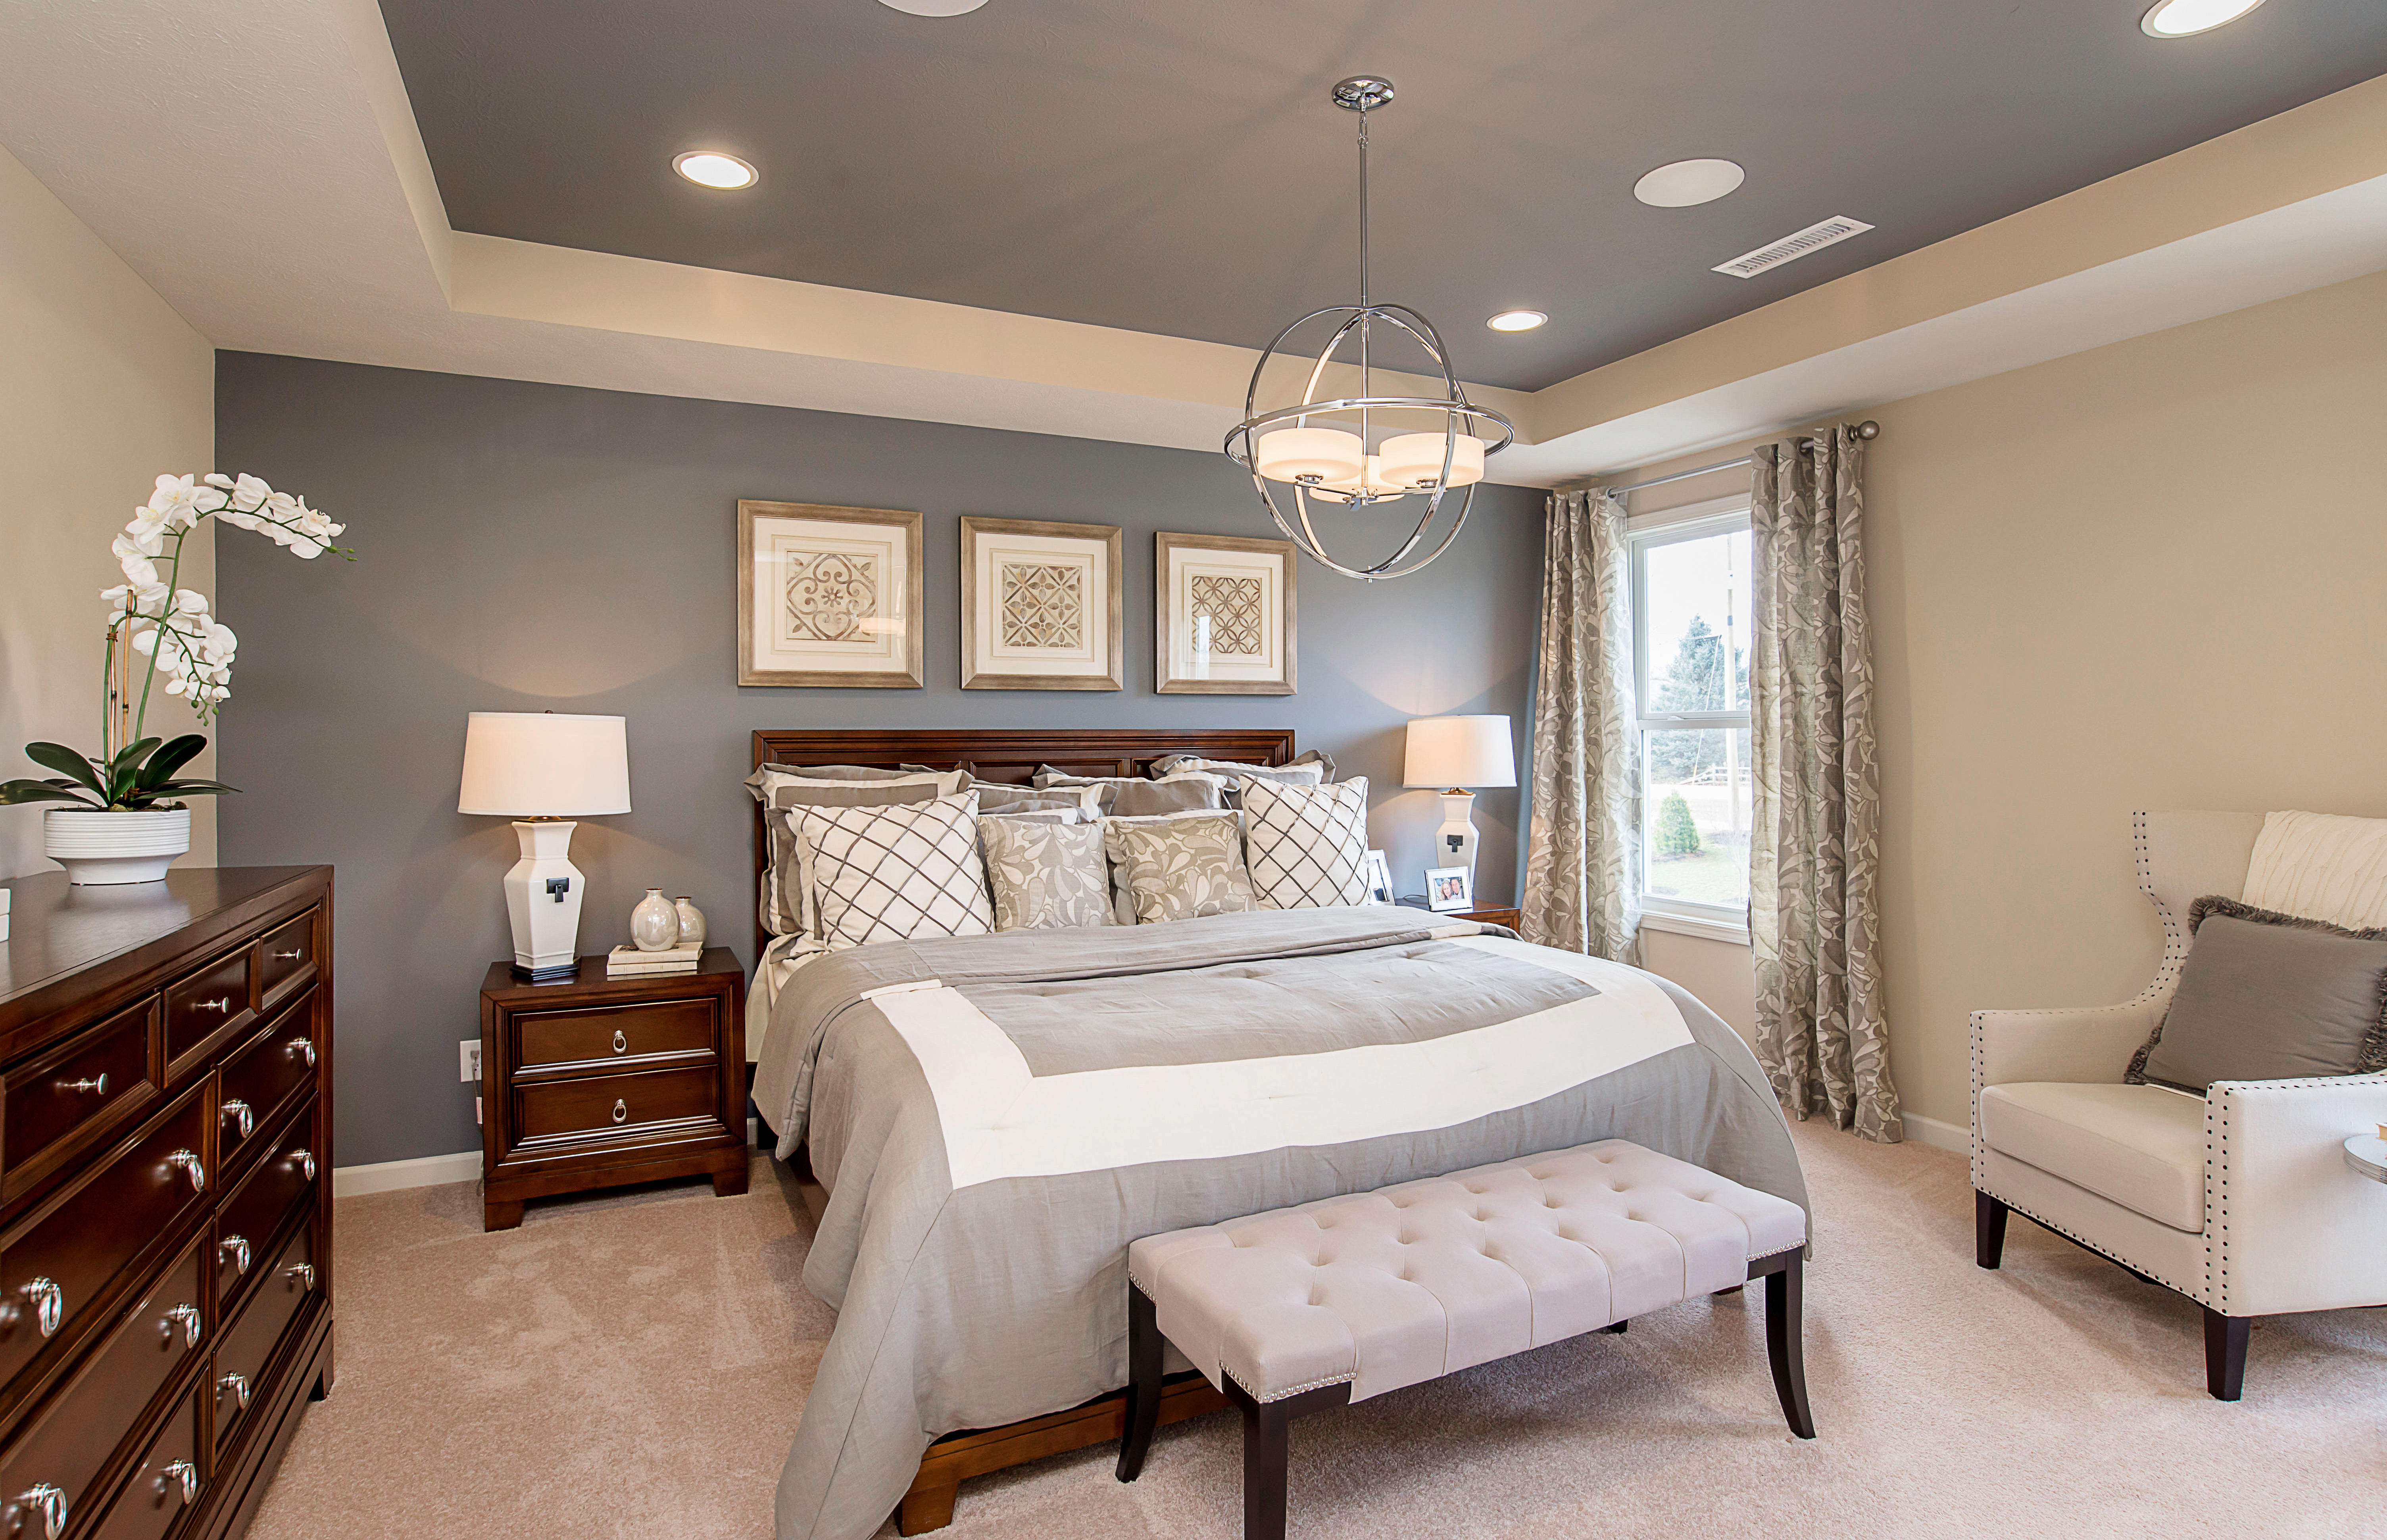 Bent Creek by Pulte Homes image 3